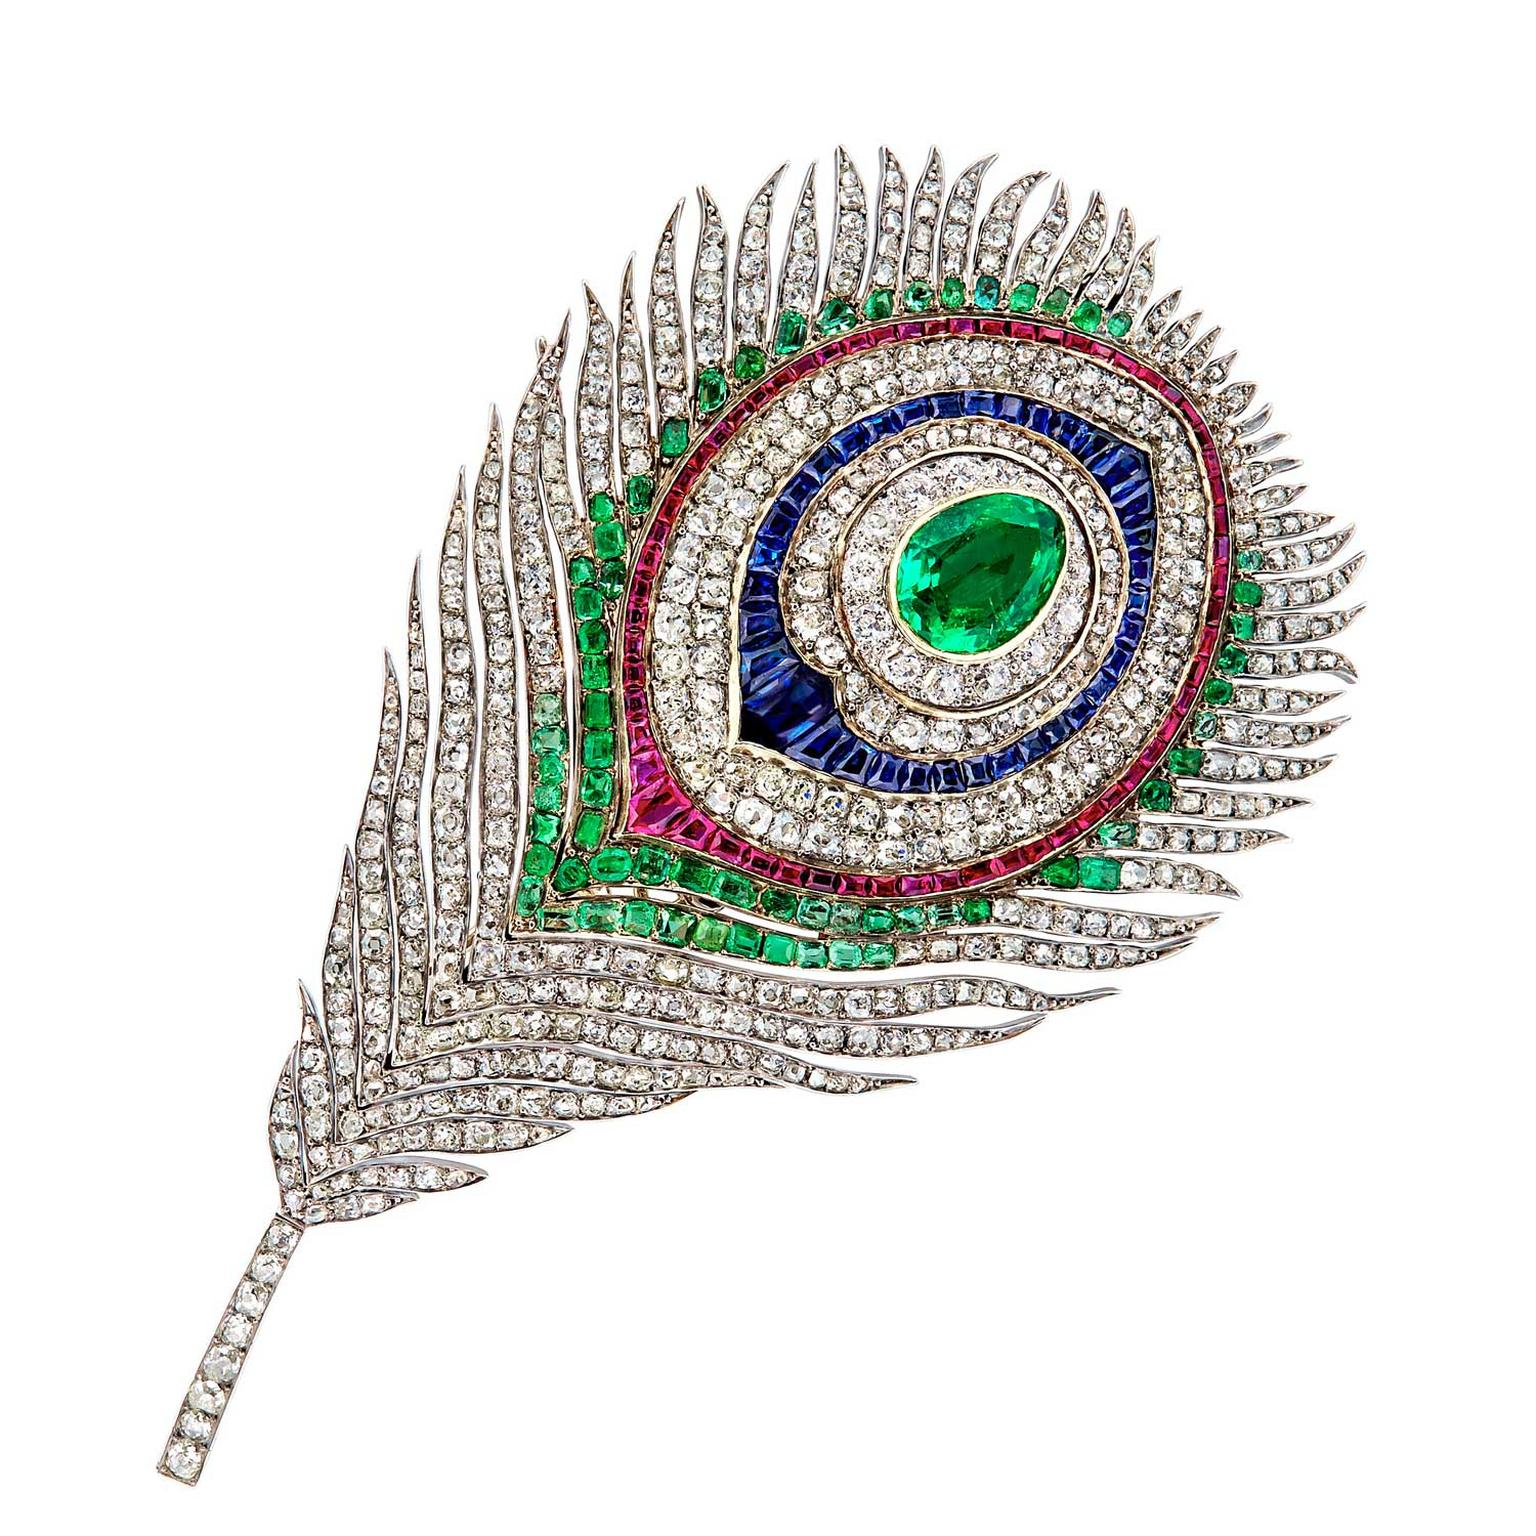 Mellerio dits Meller articulated and transformable peacock brooch, circa 1968